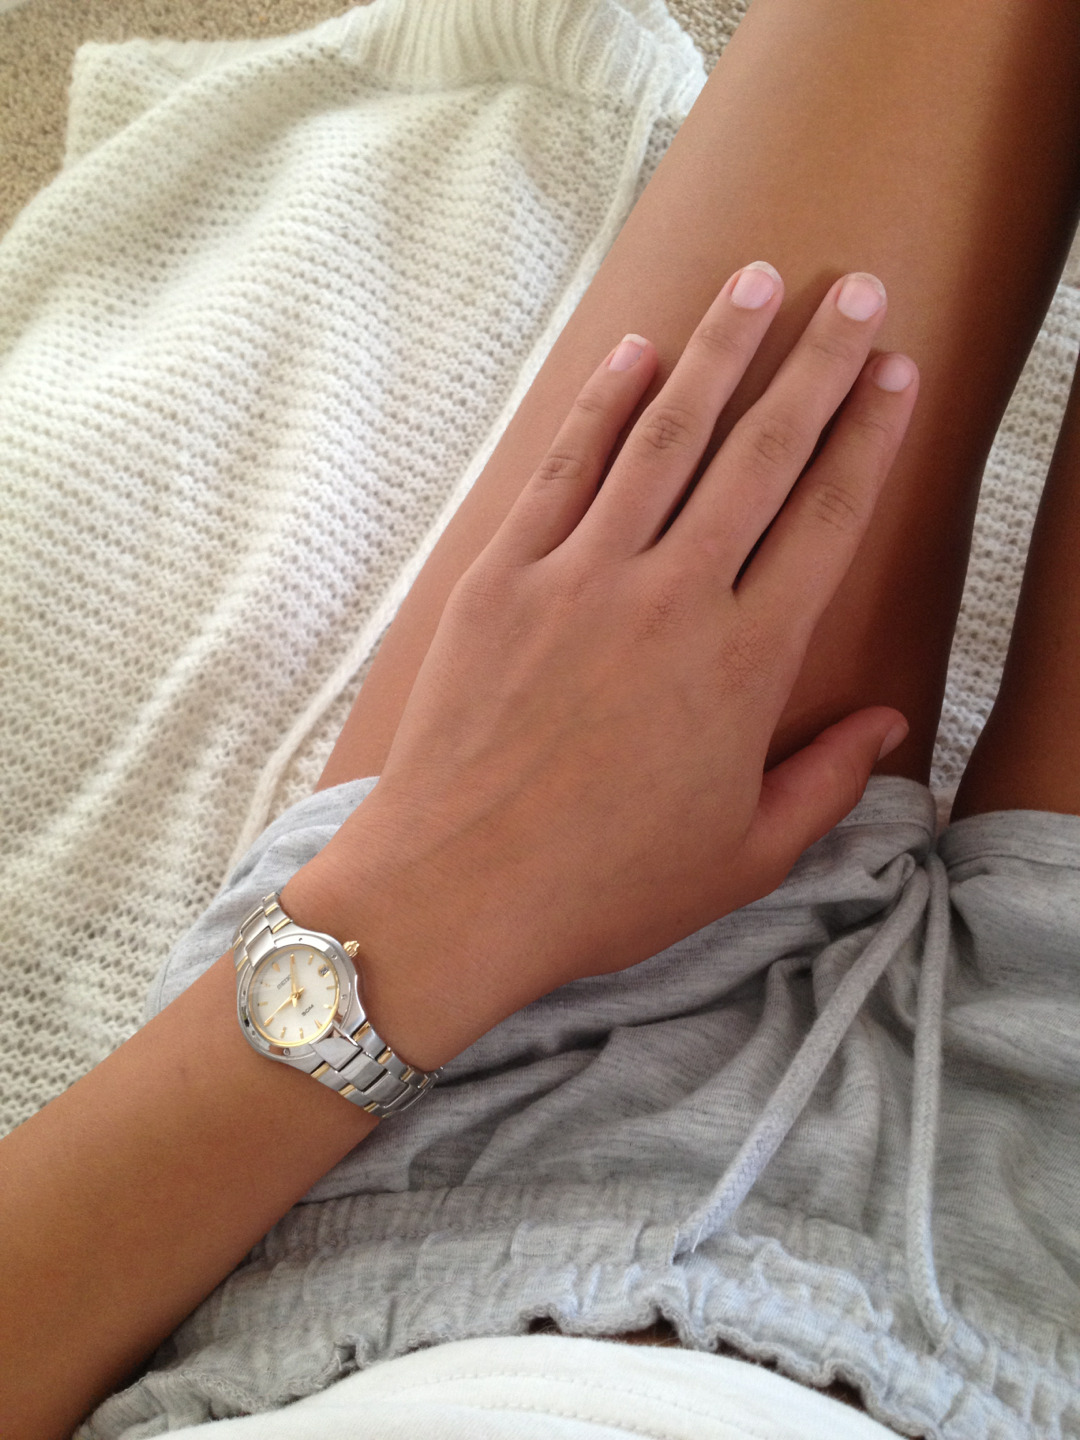 euoria:  euoria:  hus-h:  finally wearing my watch ~   ☼more posts like these here☼     lustire:  scar-covered:  satisfied-enough:  happy—tears:  b-udi:  black-kohl:  i found the best blog on tumblr its actually so gorgeous. im sorry for promoting on a photo but its actually perfect and i want everyone to see it, her links hereshe follows most blogs back and if you ask nicely she does promos. idk but you should check her out because shes hot and has a great blog.  she promoted me :) i gained heaps haah    her blogs perfect  wow her blog! where have you been all my life